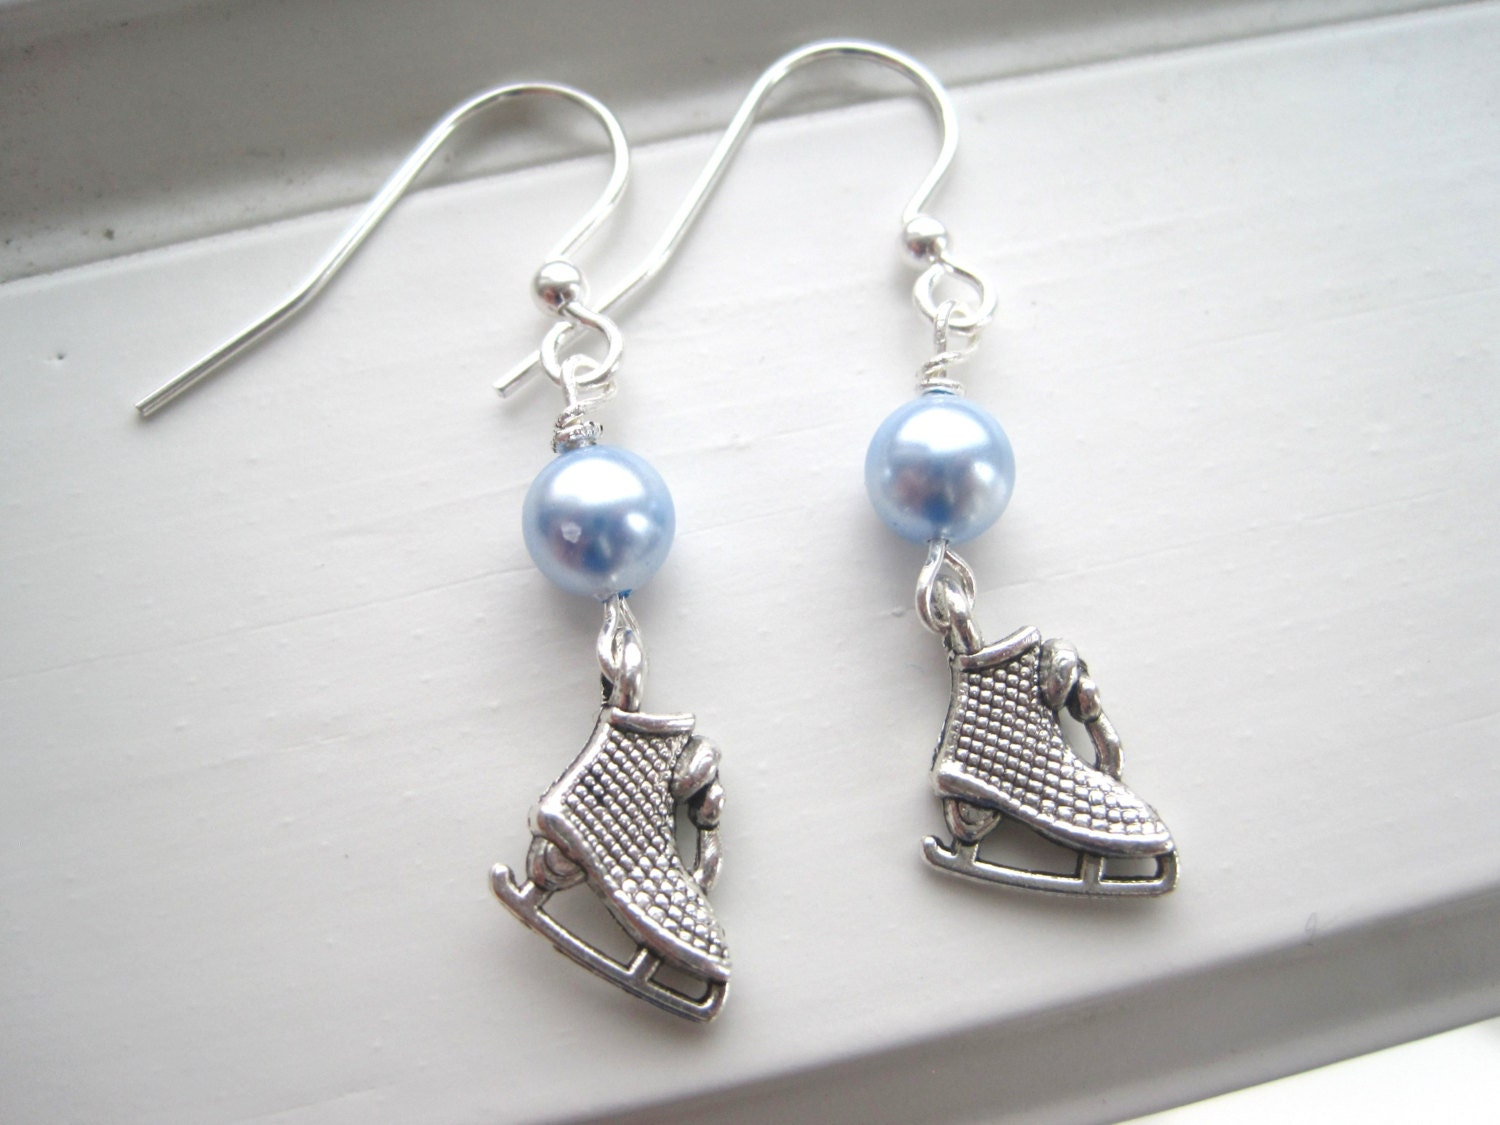 Ice Skate Earrings - Ice Skating Jewelry -Winter Olympics Earrings - Silver Charm Earrings - Sochi Olympics 2014 - Light Blue Earrings - Sparkleandswirl